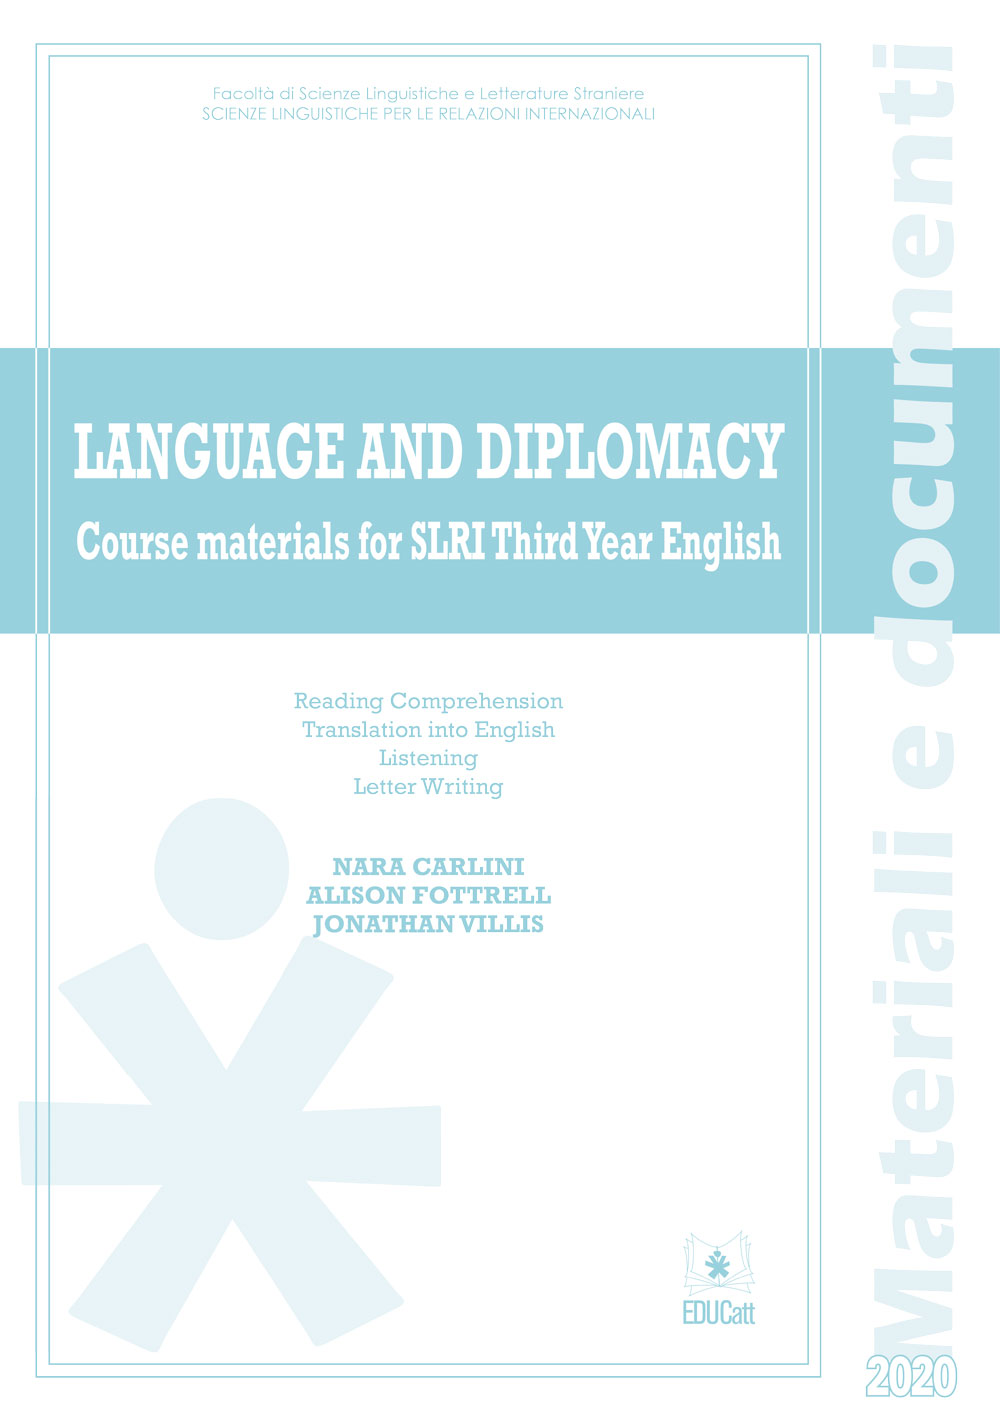 LANGUAGE AND DIPLOMACY. COURSE MATERIALS FOR SLRI THIRD YEAR ENGLISH 2020